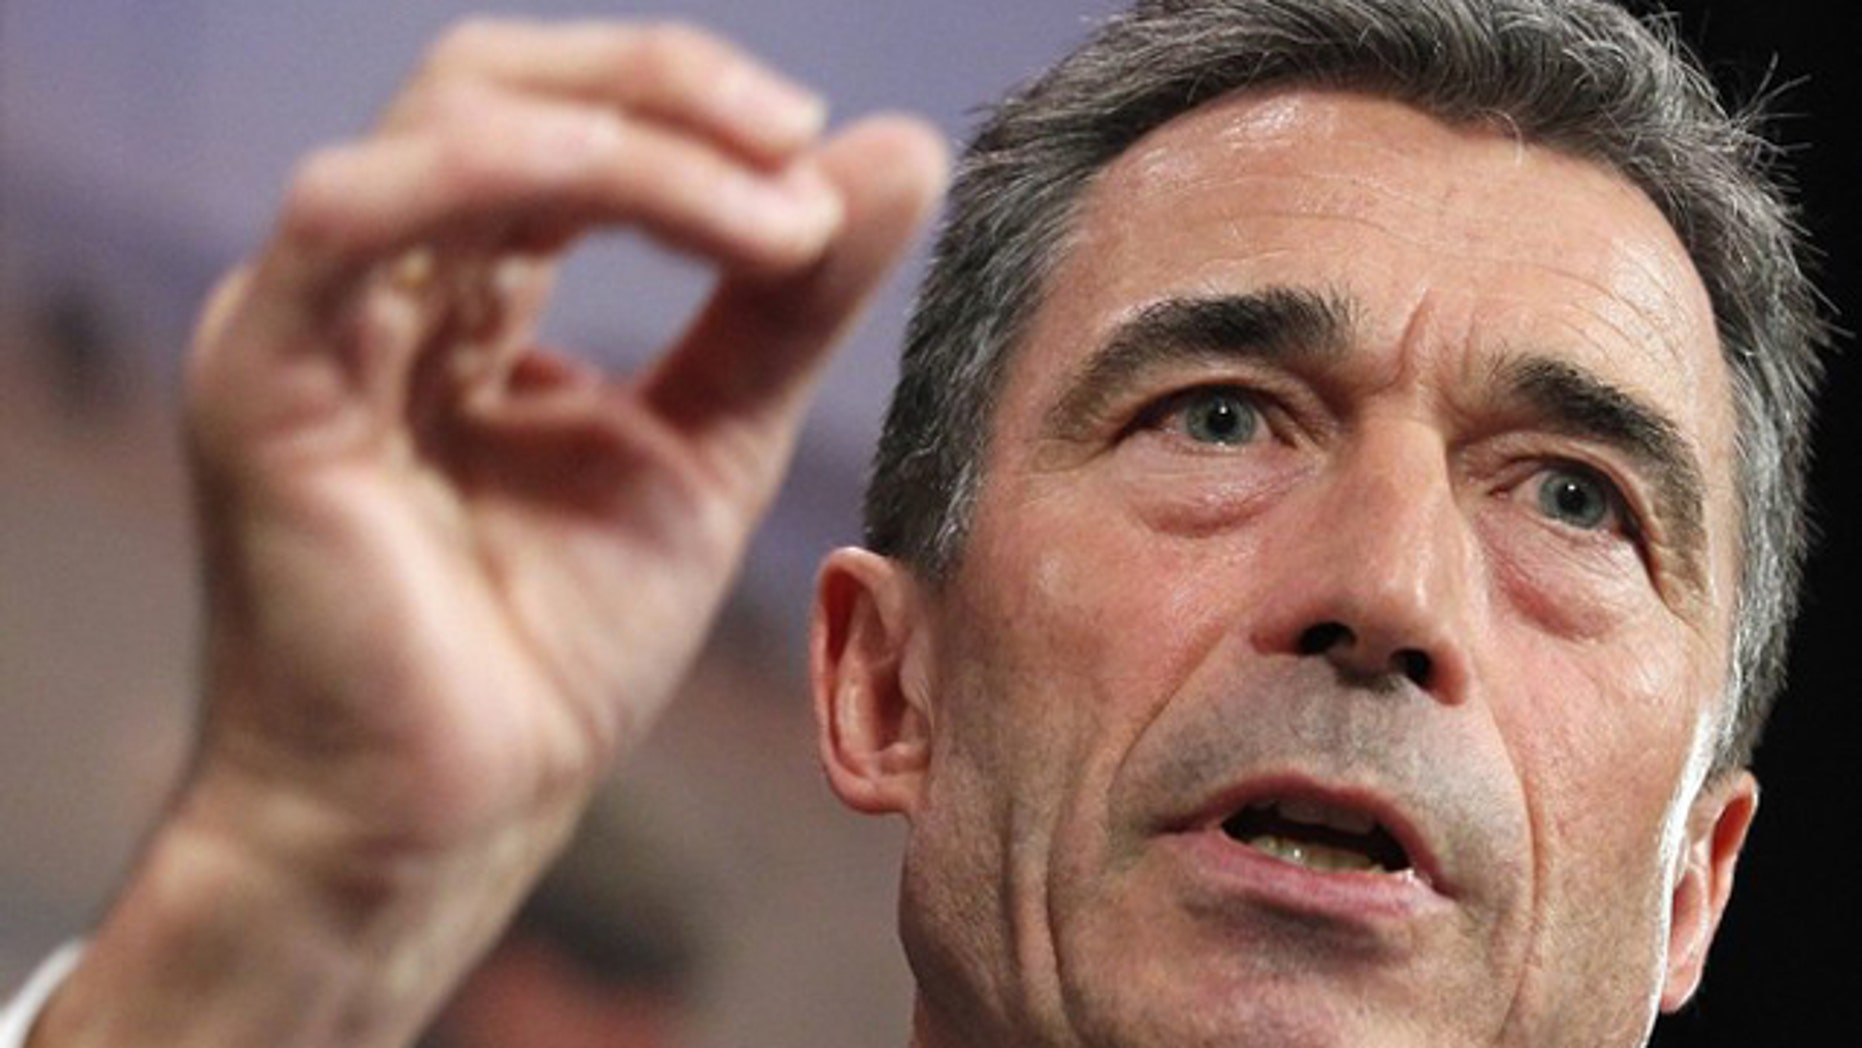 NATO Secretary General Anders Fogh Rasmussen briefs the media during his monthly news conference at the Alliance headquarters in Brussels May 4.